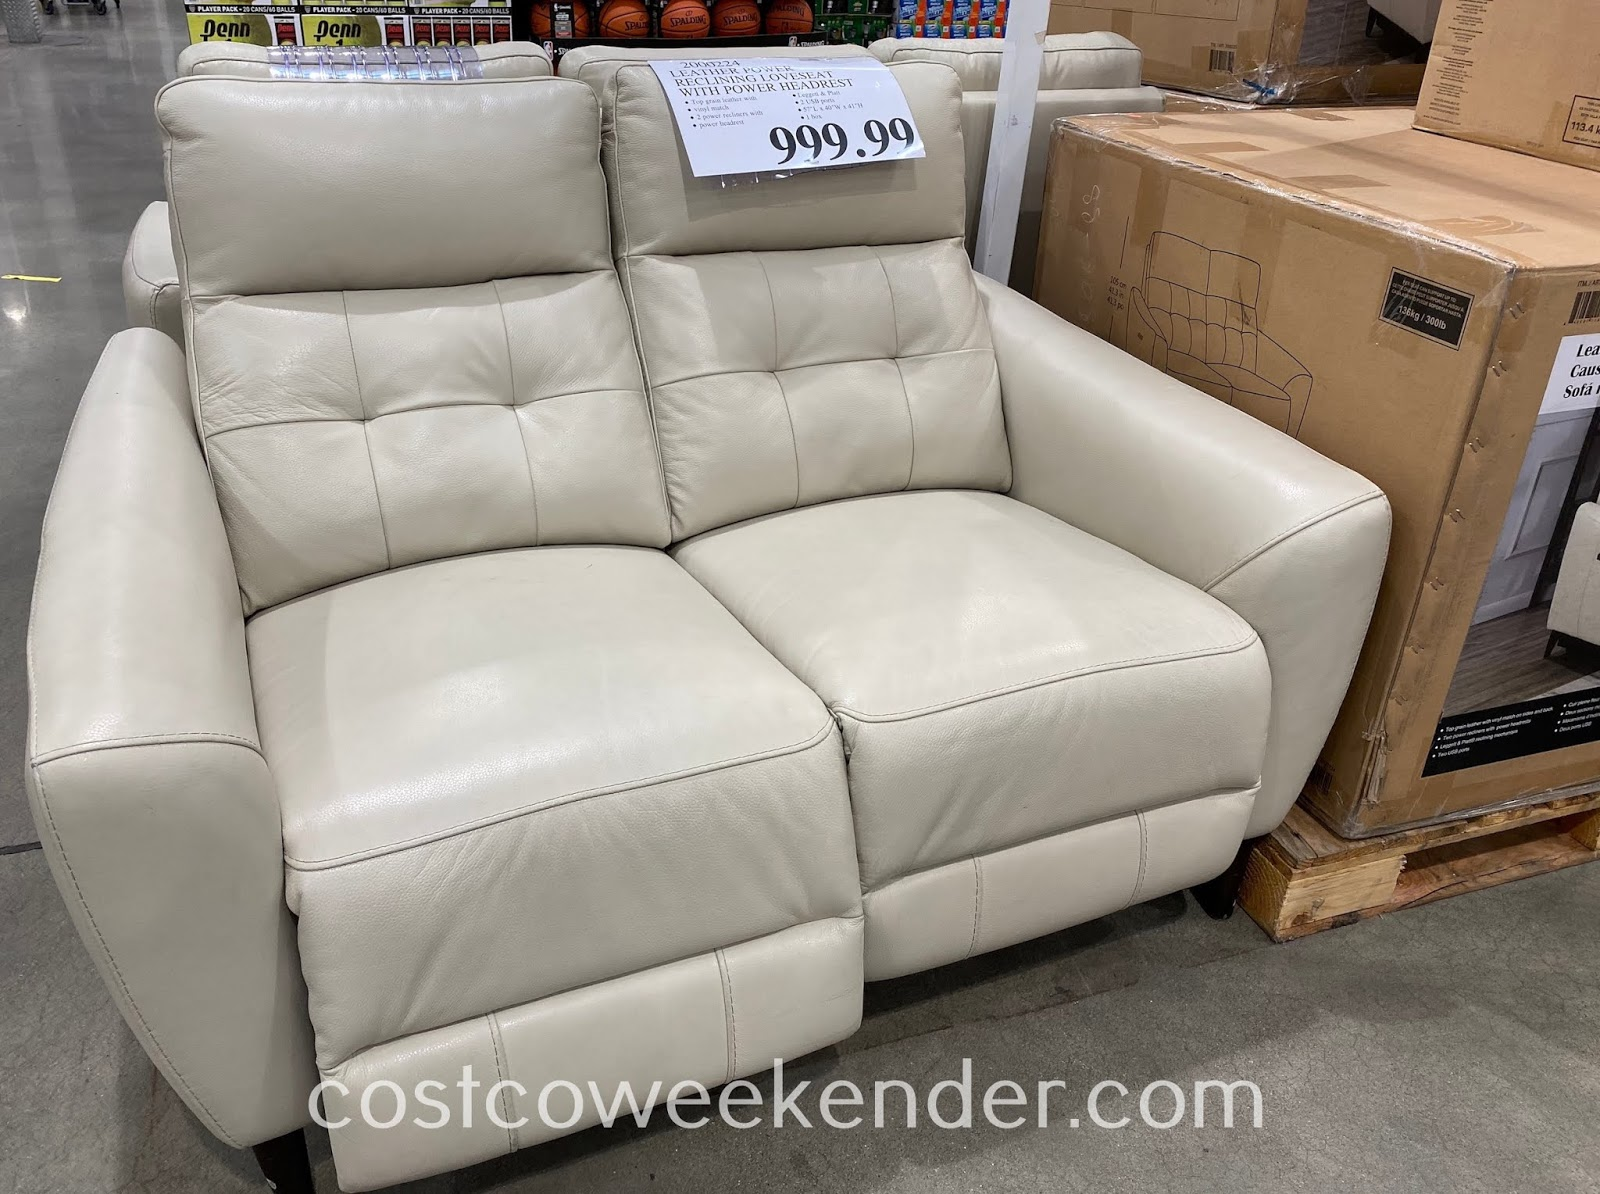 Relax in your home on the Leather Power Reclining Loveseat